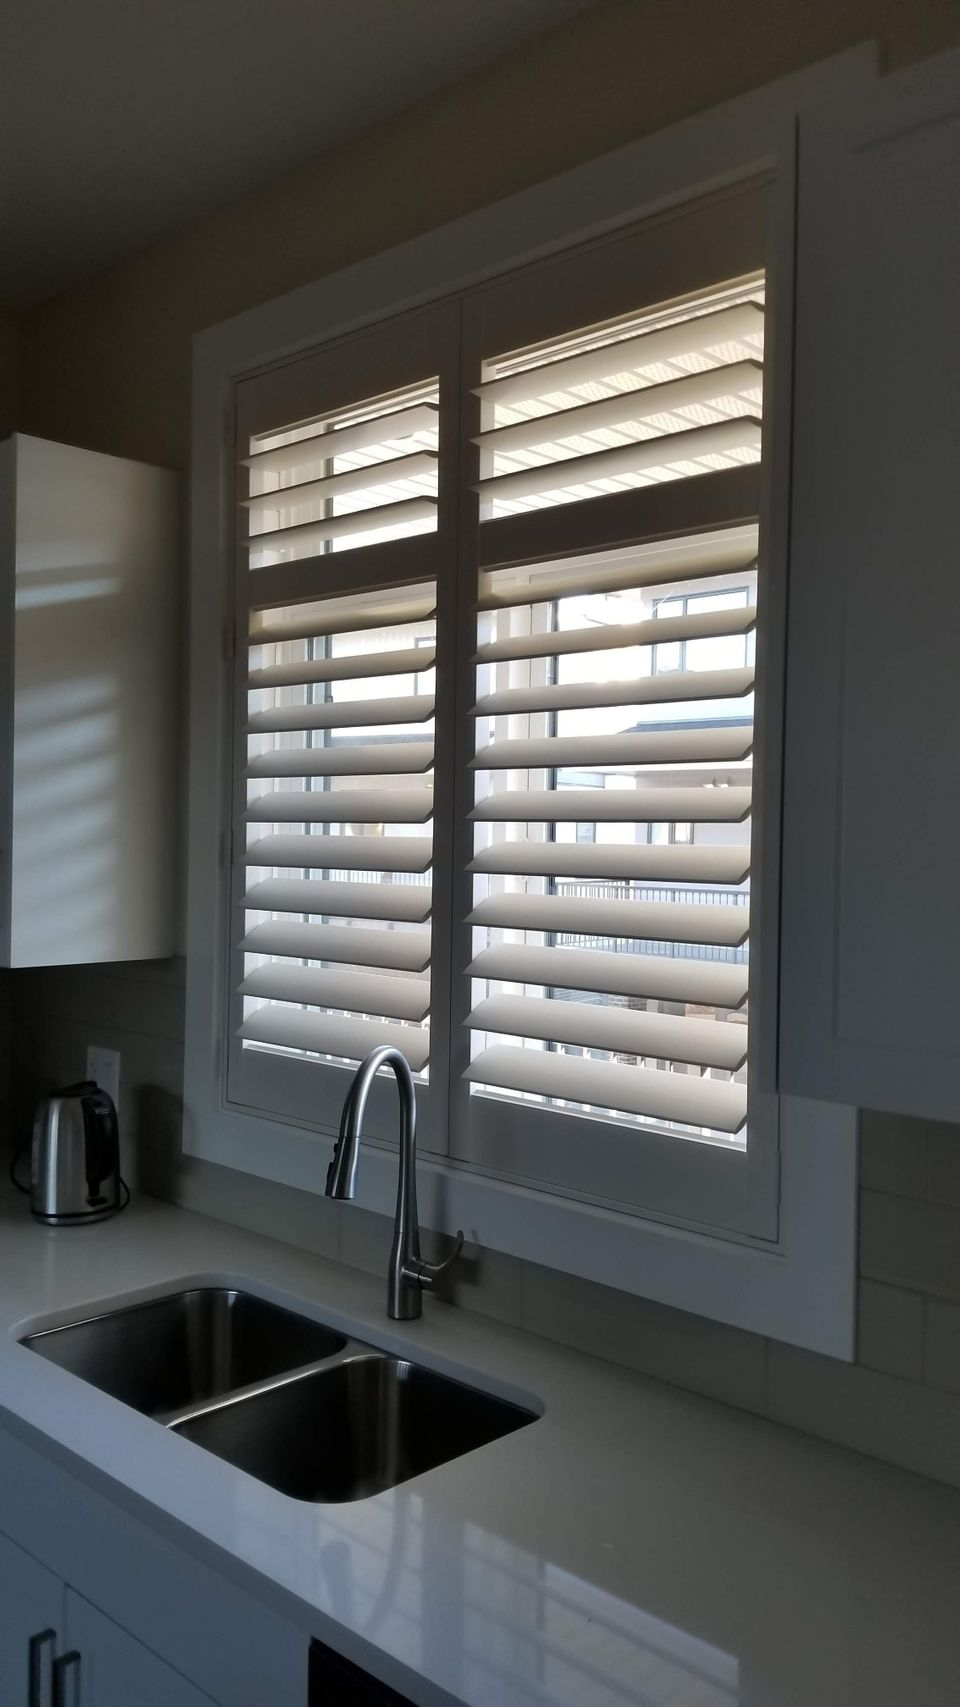 shutters, Hunter Douglas Shutters, Palm Beach Shutters, New Style Shutters, S.P. Interiors